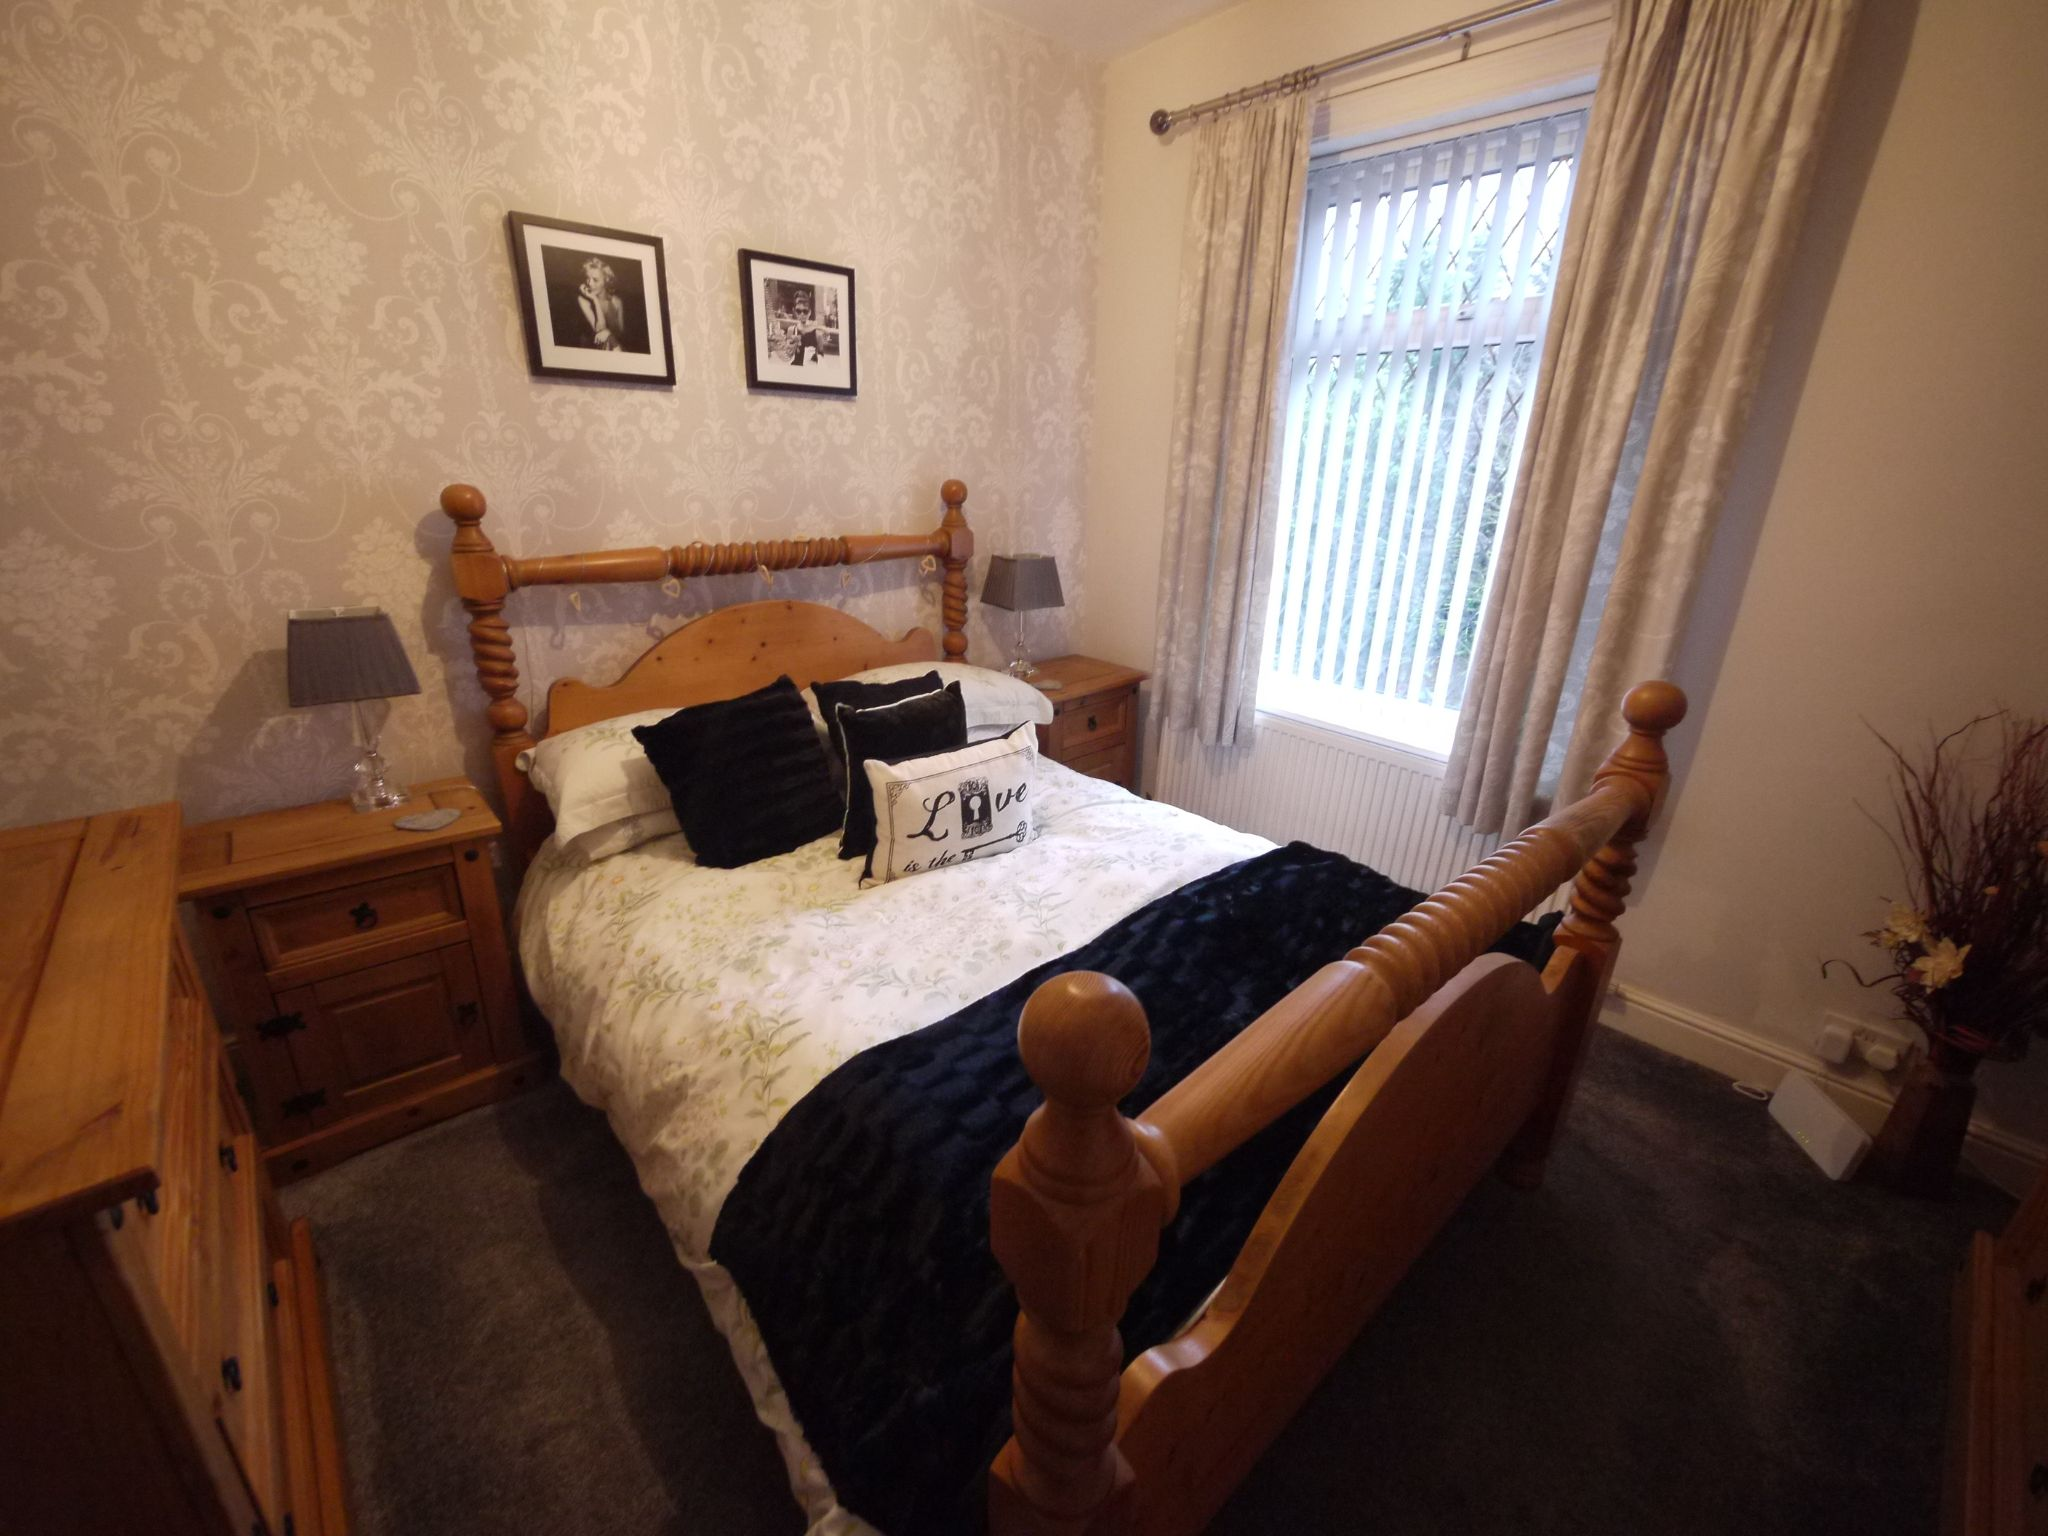 3 bedroom semi-detached house For Sale in Calderdale - Photograph 1.